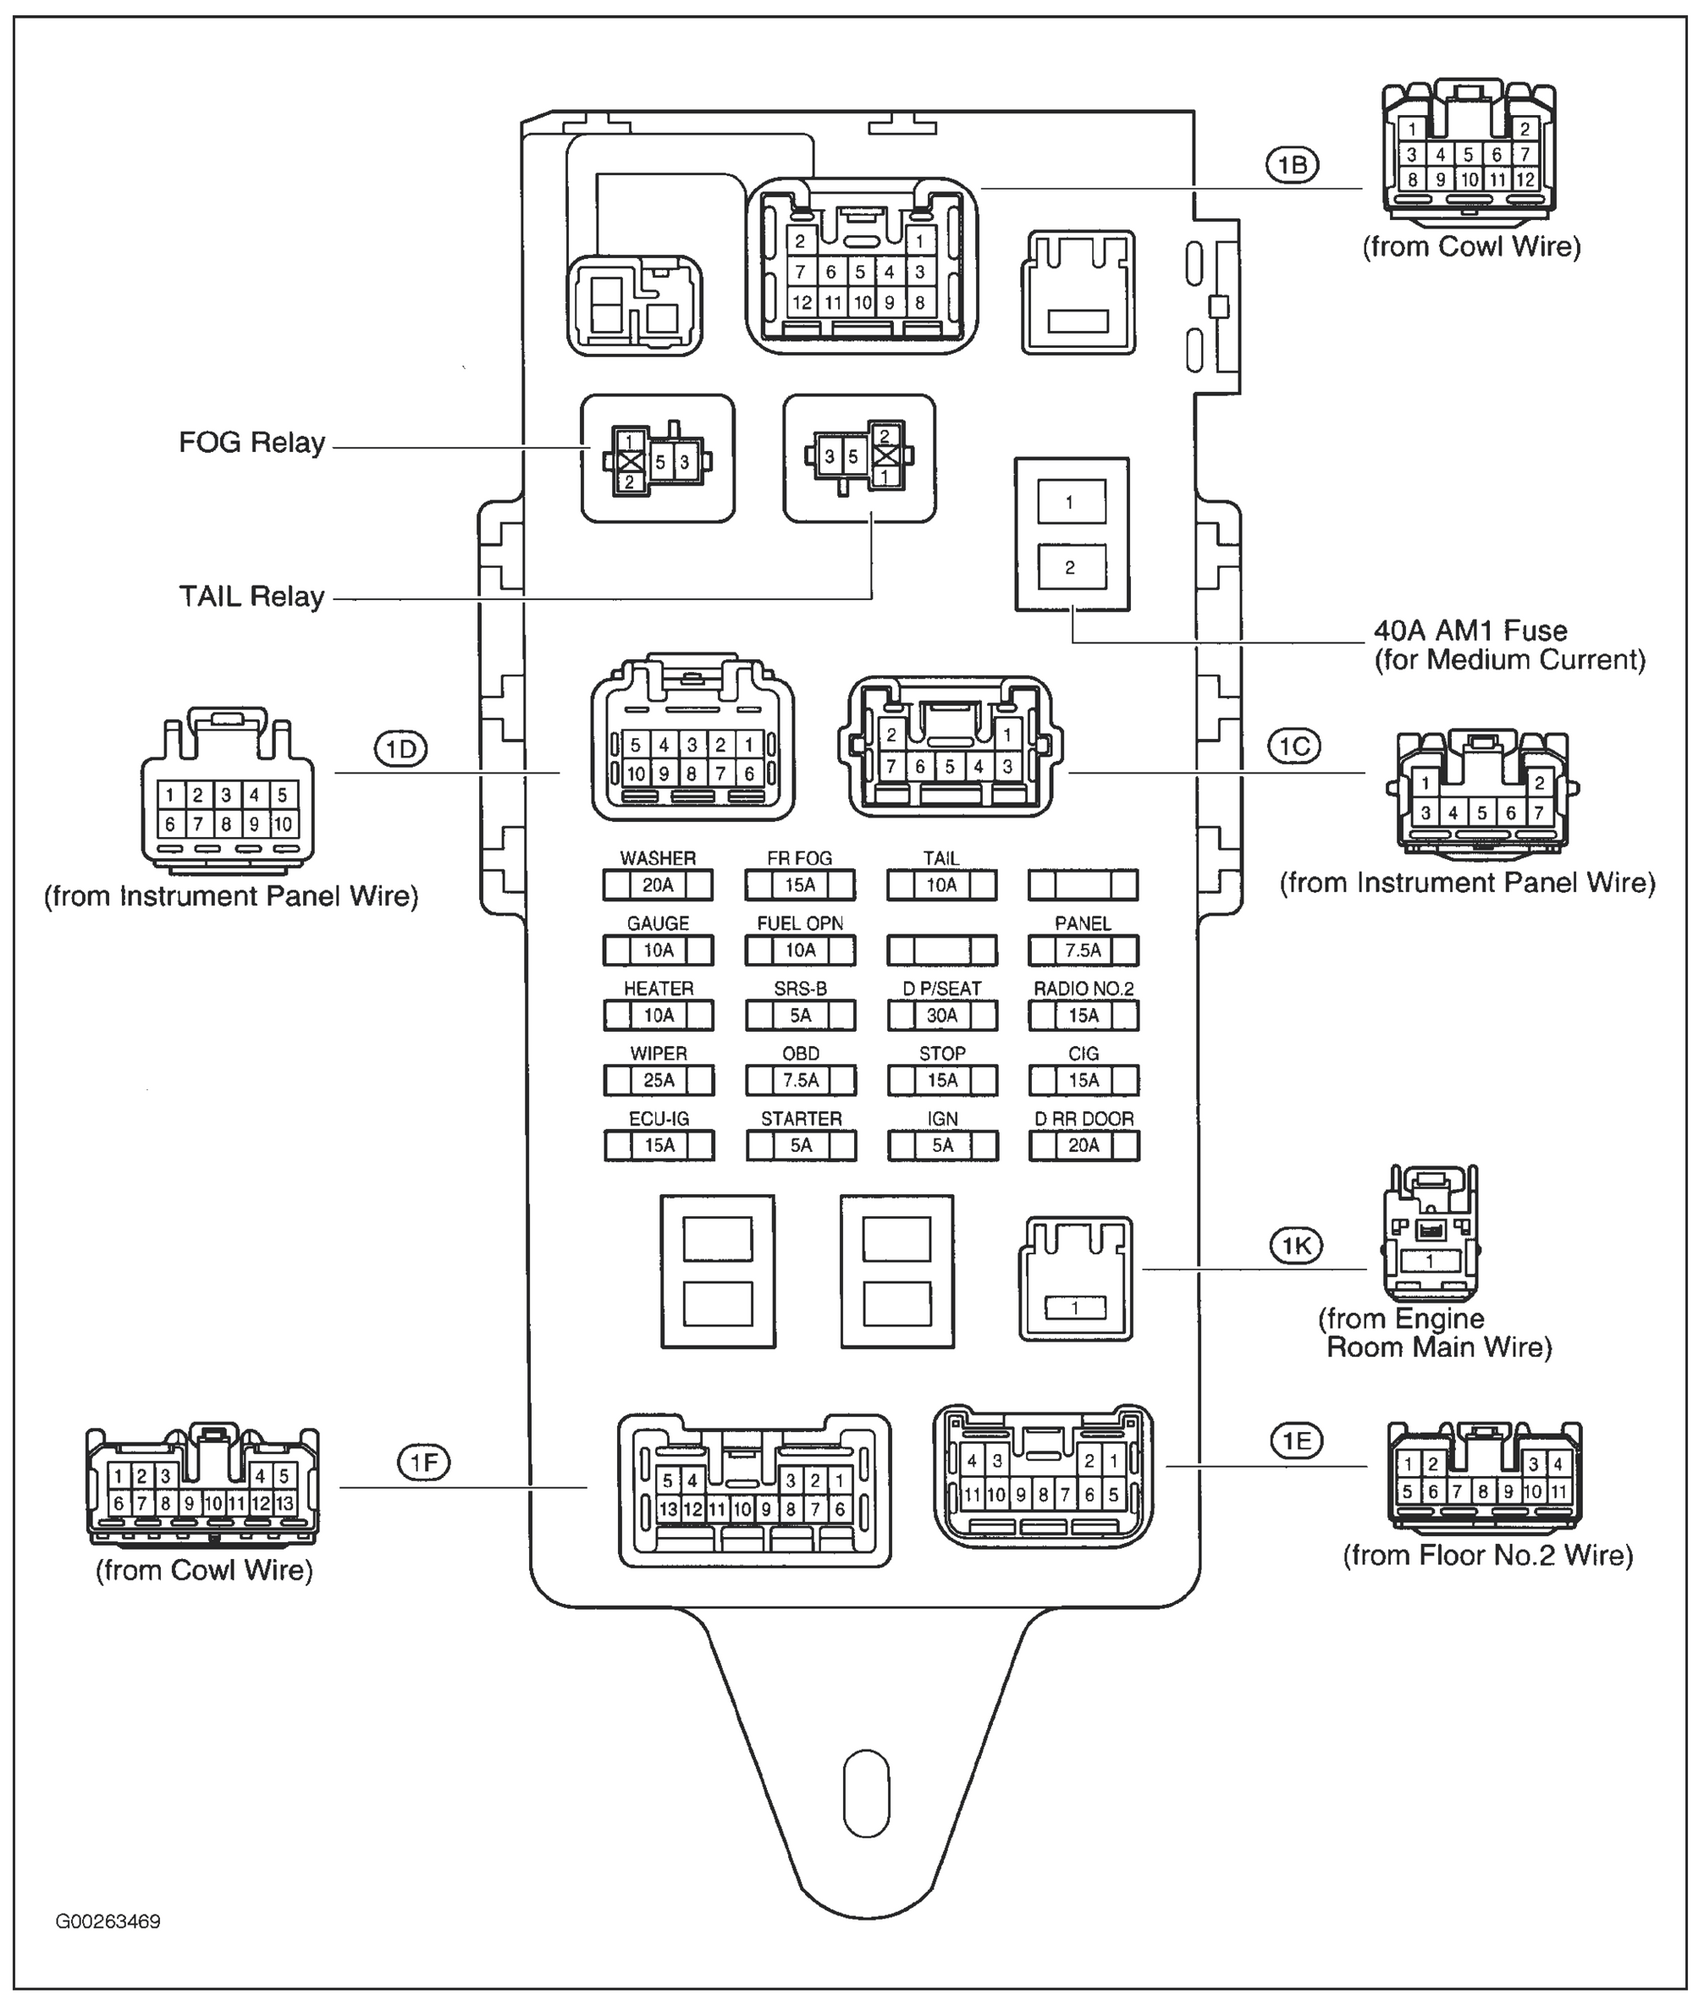 Lexus Gs300 Fuse Box Diagram Archive Of Automotive Wiring 1999 F350 Engine 2006 Experts U2022 Rh Evilcloud Co Uk 1993